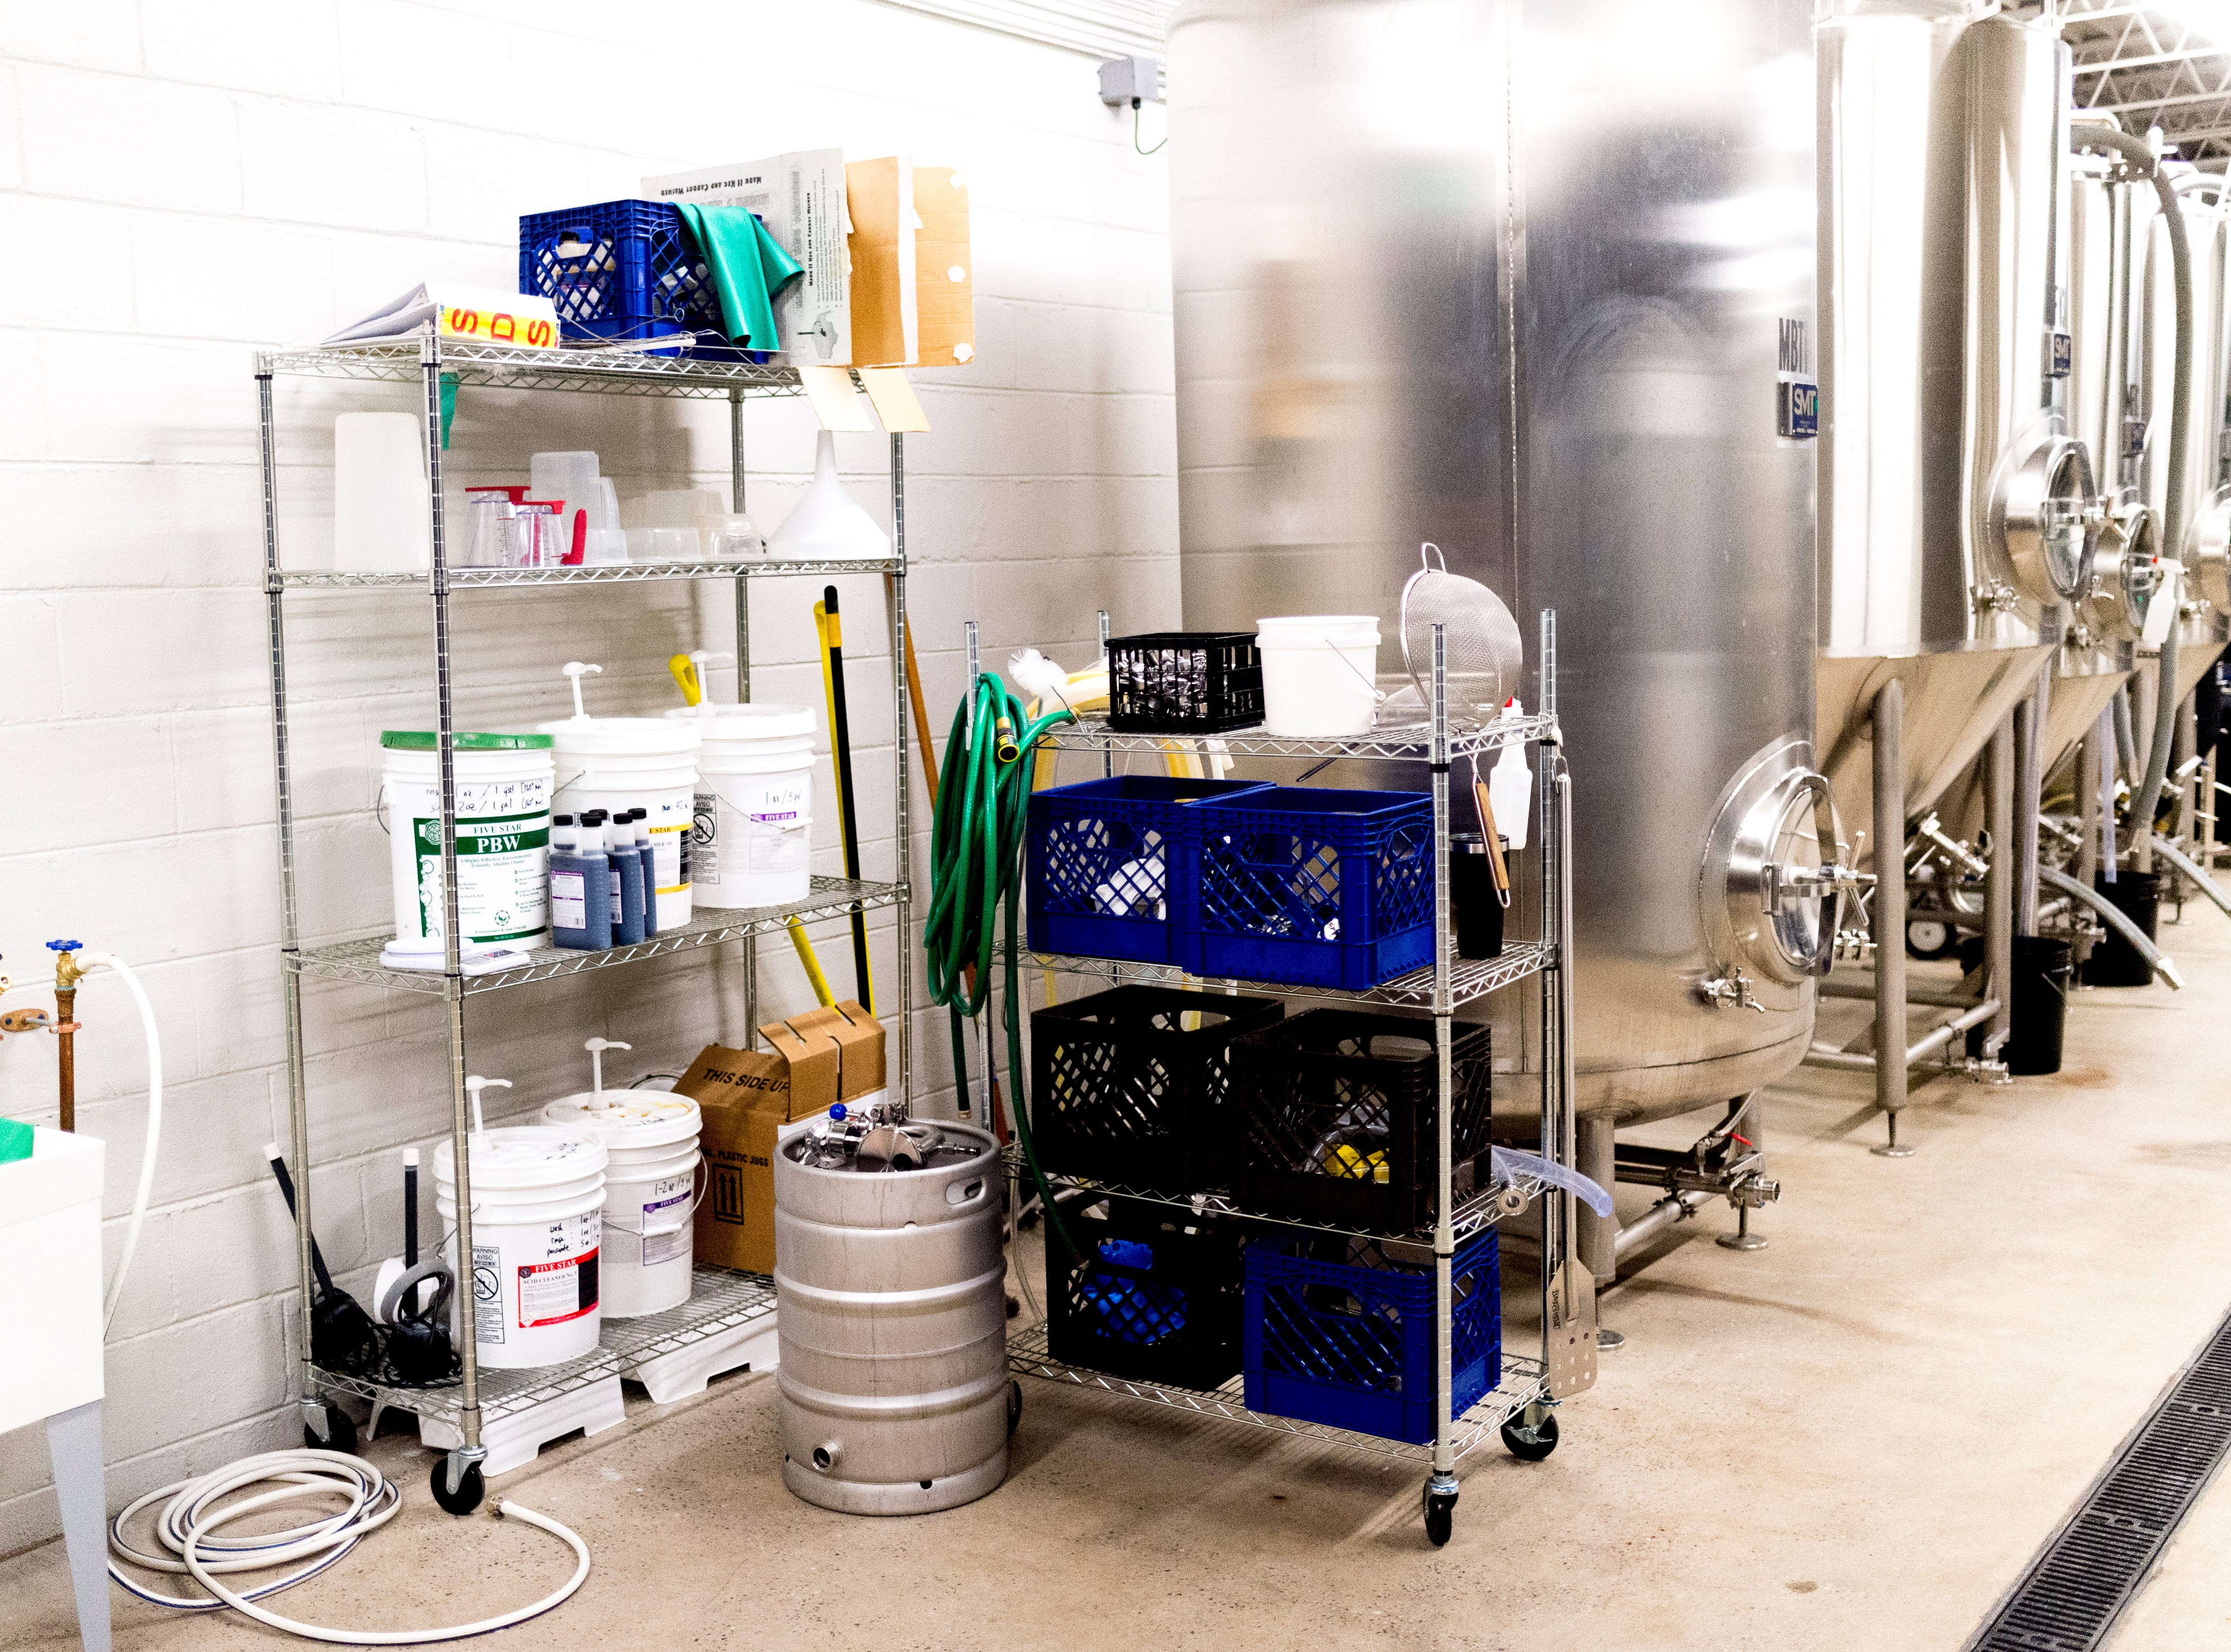 Brewing equipment inside the brewery at Elst Brewing Company on 2417 N Central St. in Knoxville, Tennessee on Thursday, November 1, 2018. Elst plans to open its door beginning next year.